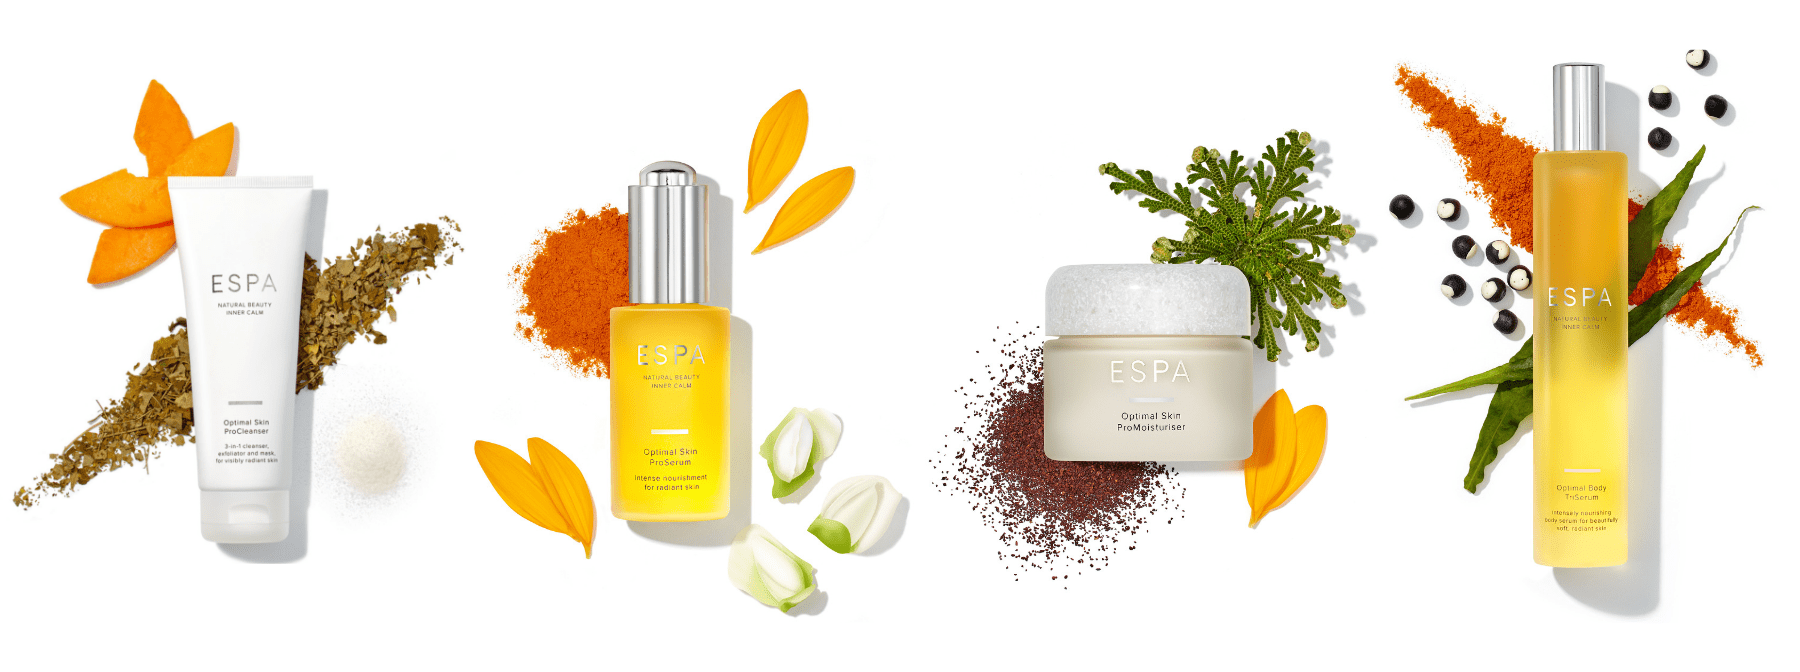 The ingredients behind the Optimal Skin Collection